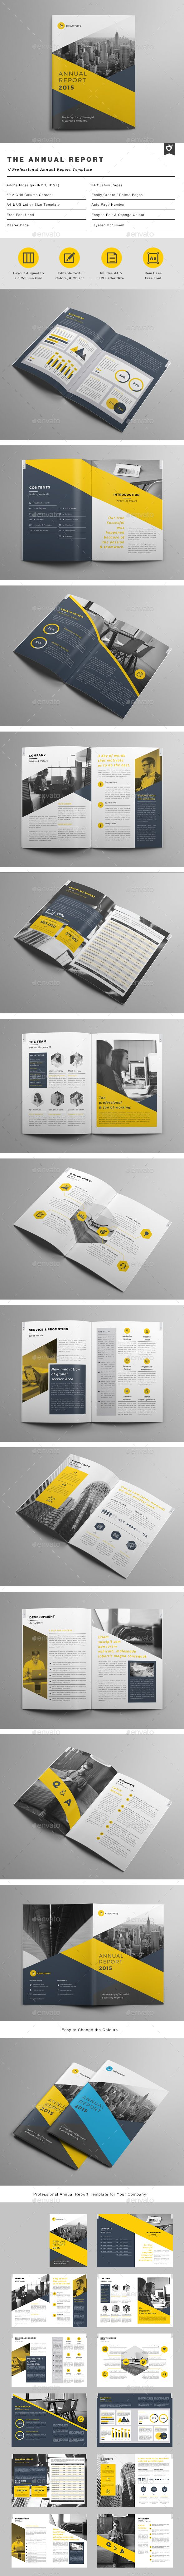 The Annual Report Template InDesign INDD #design Download…